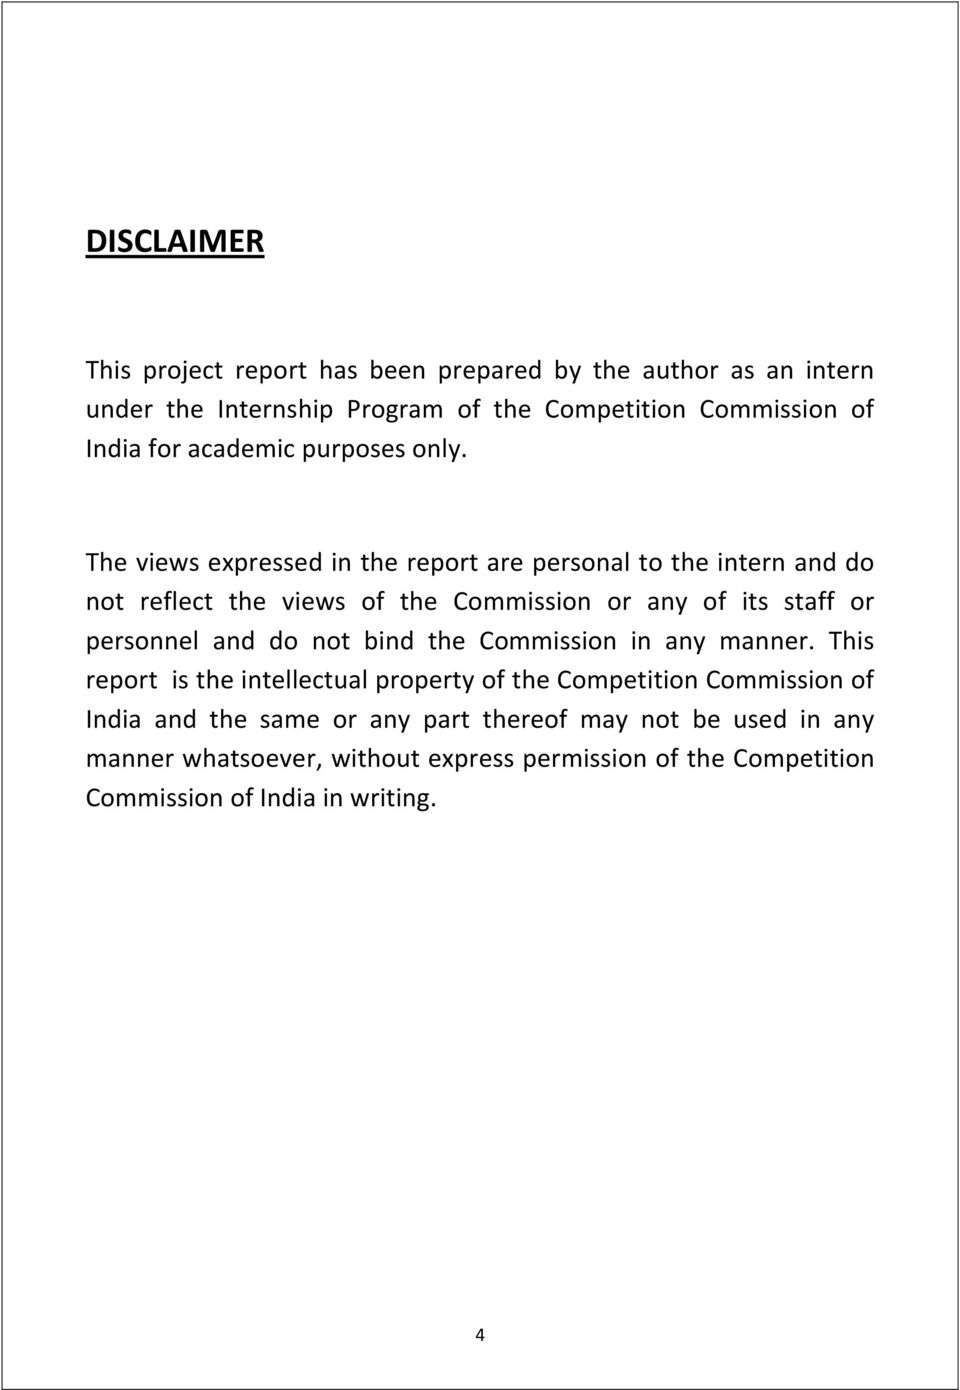 The views expressed in the report are personal to the intern and do not reflect the views of the Commission or any of its staff or personnel and do